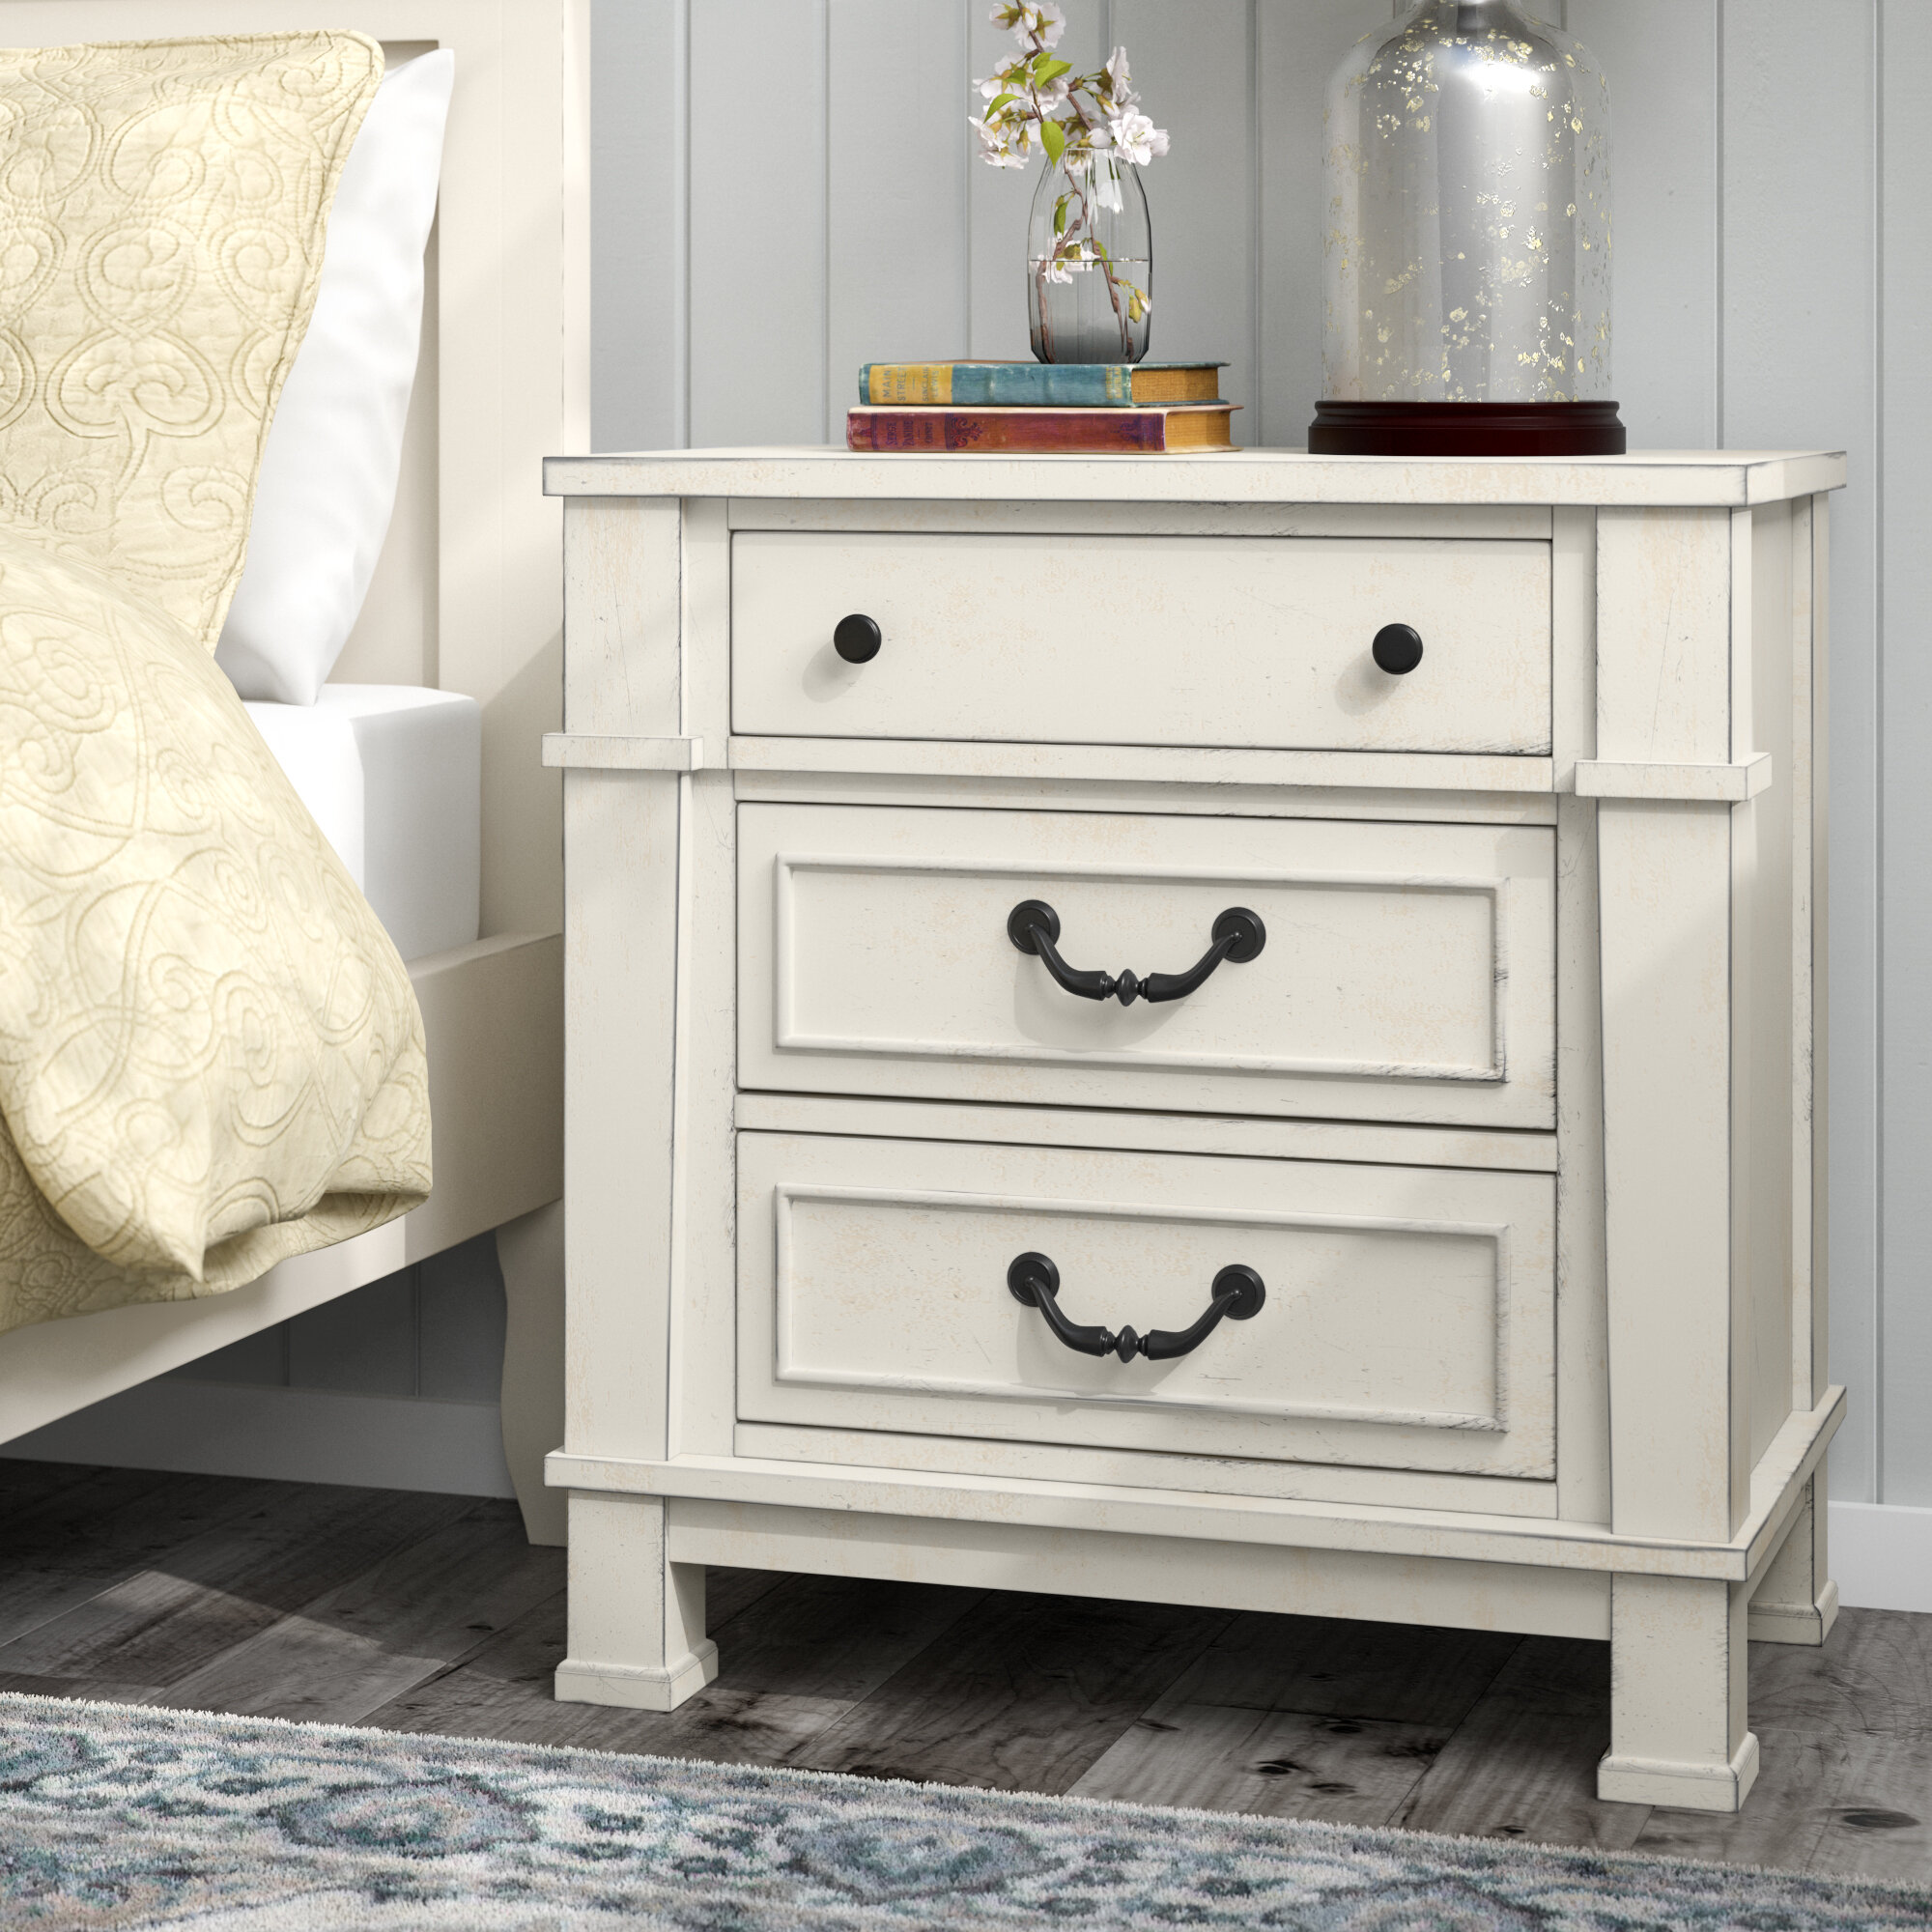 designs nightstand white dutchmans products drawer whd hayward dresser